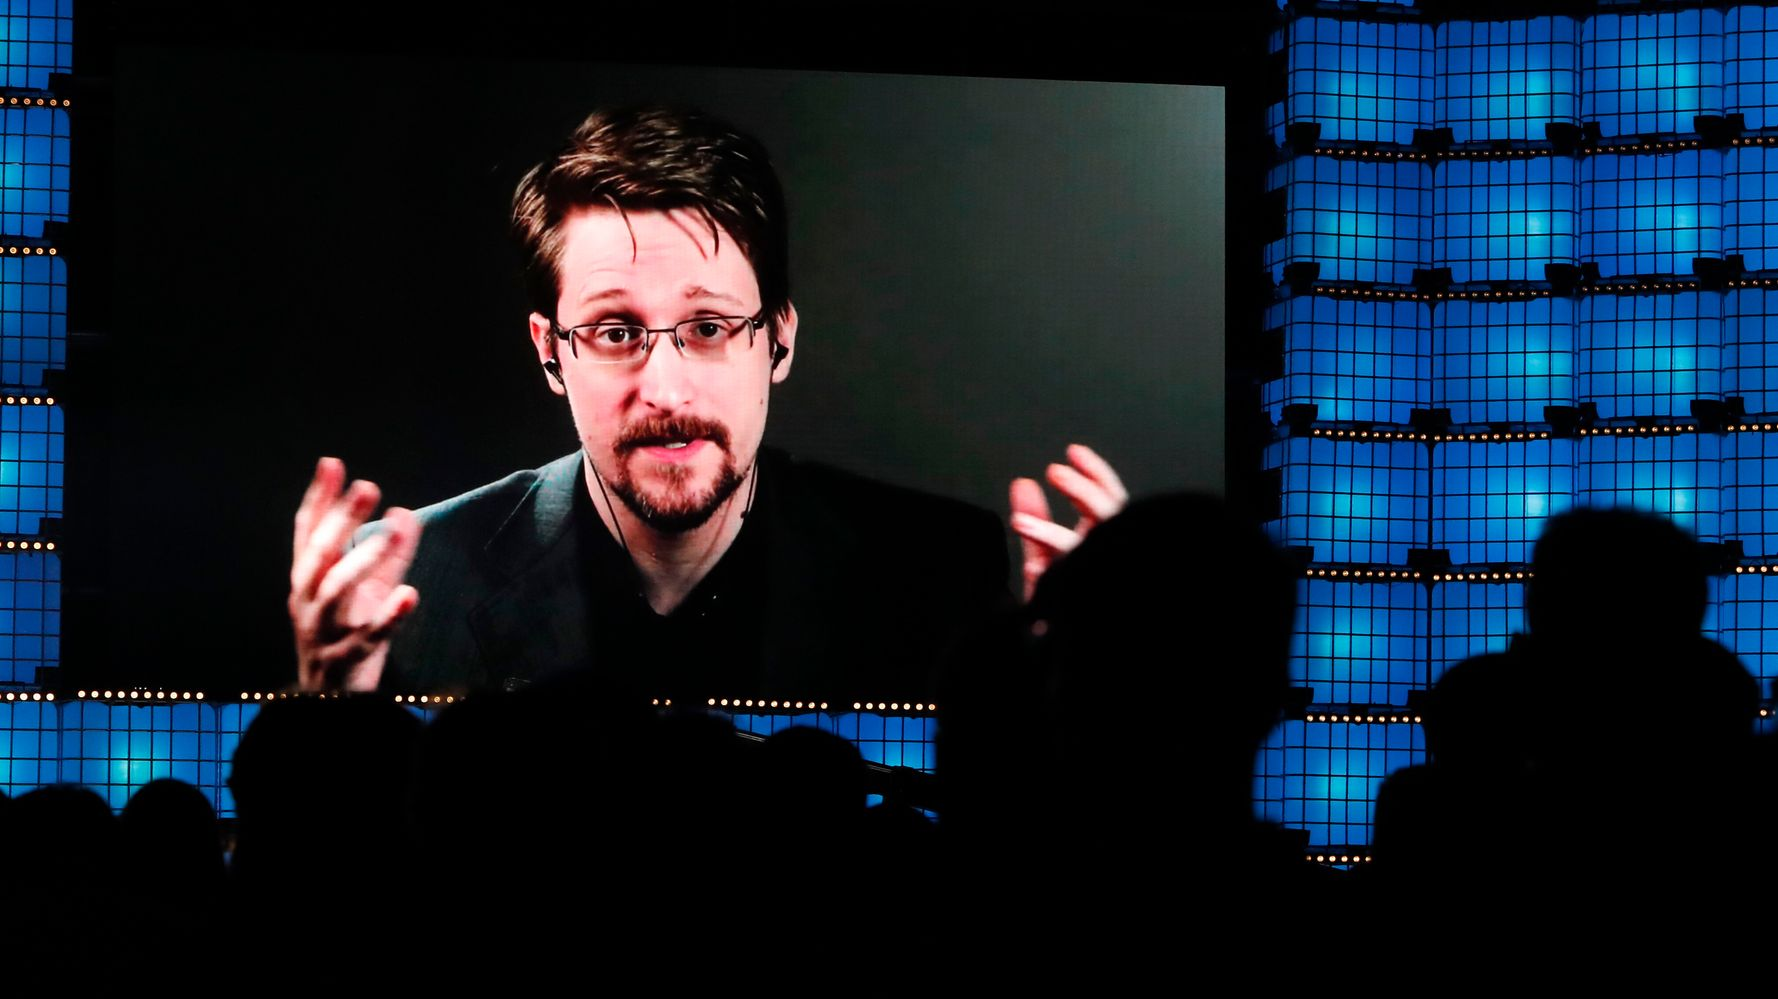 Edward Snowden Says He Plans To Apply For Russian Citizenship